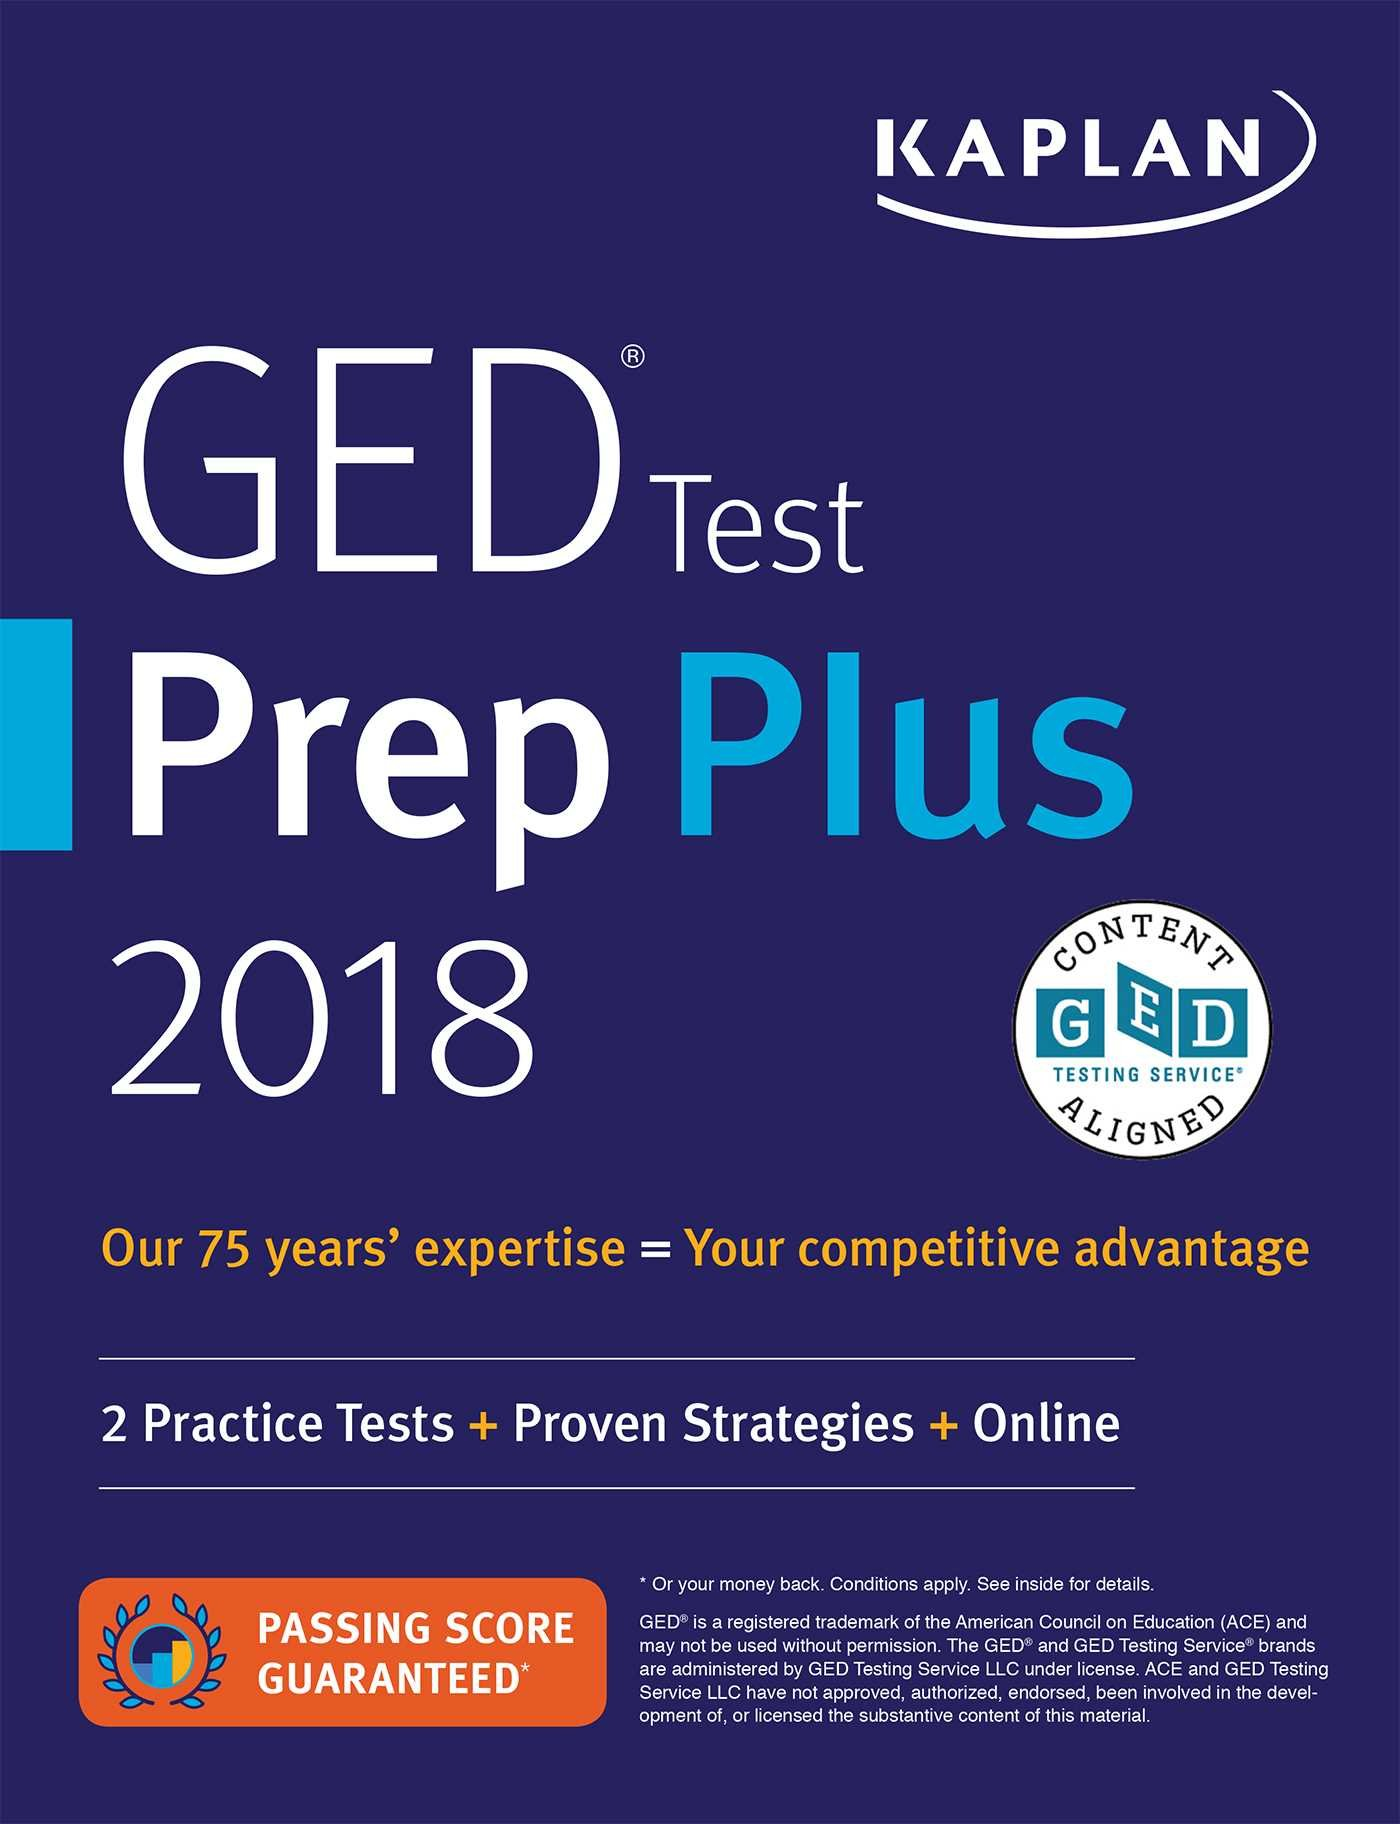 GED Test Prep Plus 2018: 2 Practice Tests + Proven Strategies + Online  (Kaplan Test Prep): Caren Van Slyke: 9781506223605: Amazon.com: Books